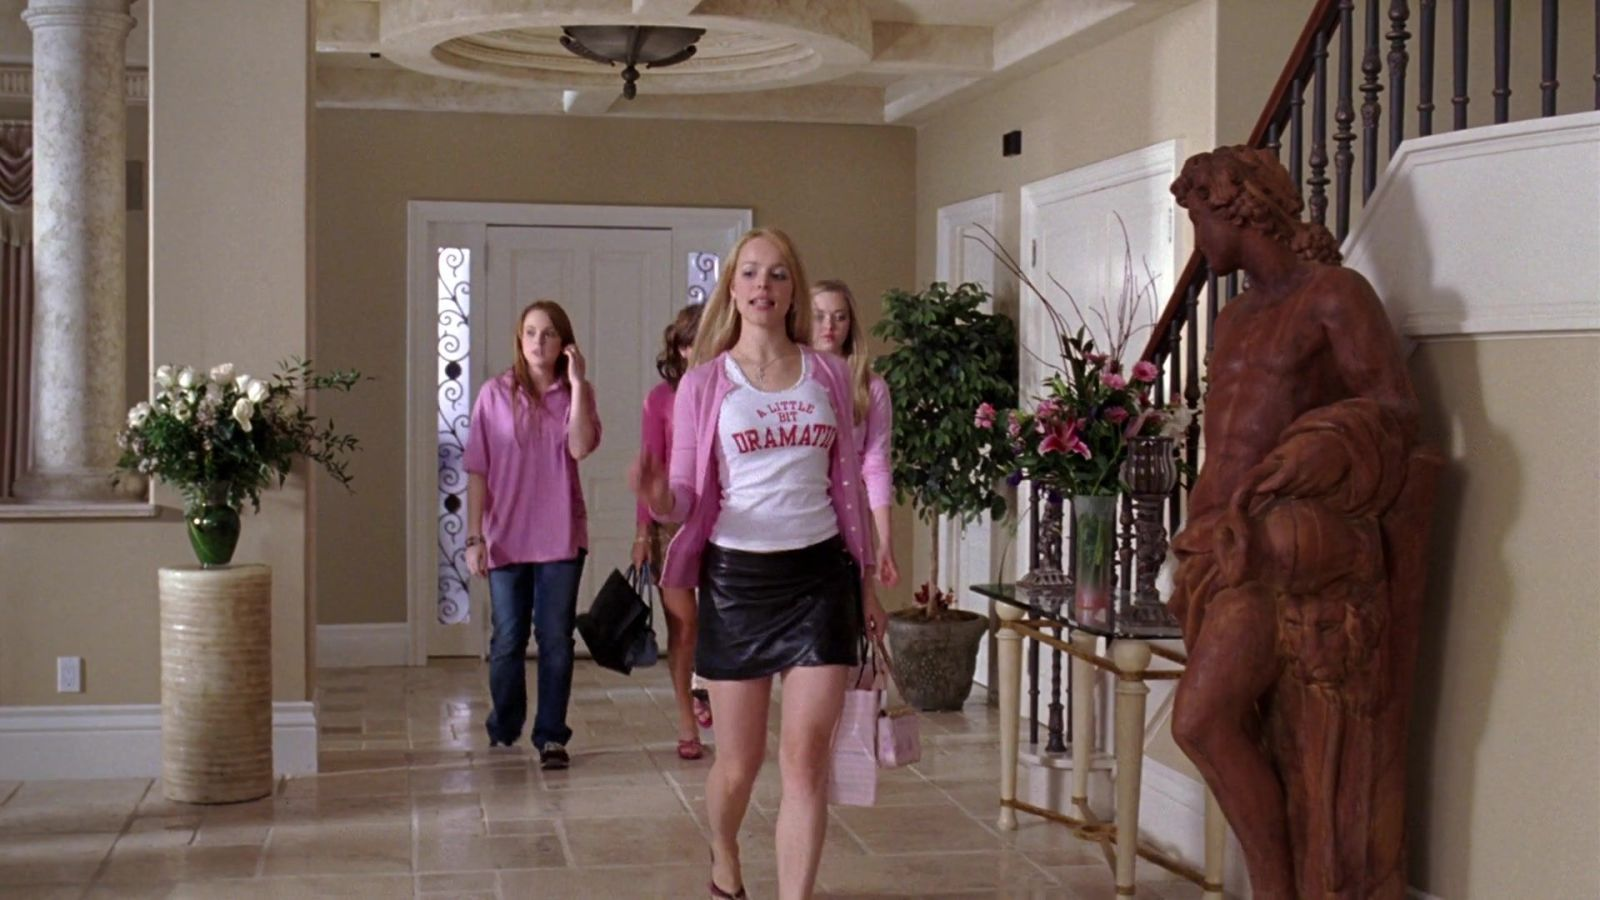 Want to live in Regina Georges Mean Girls mansion